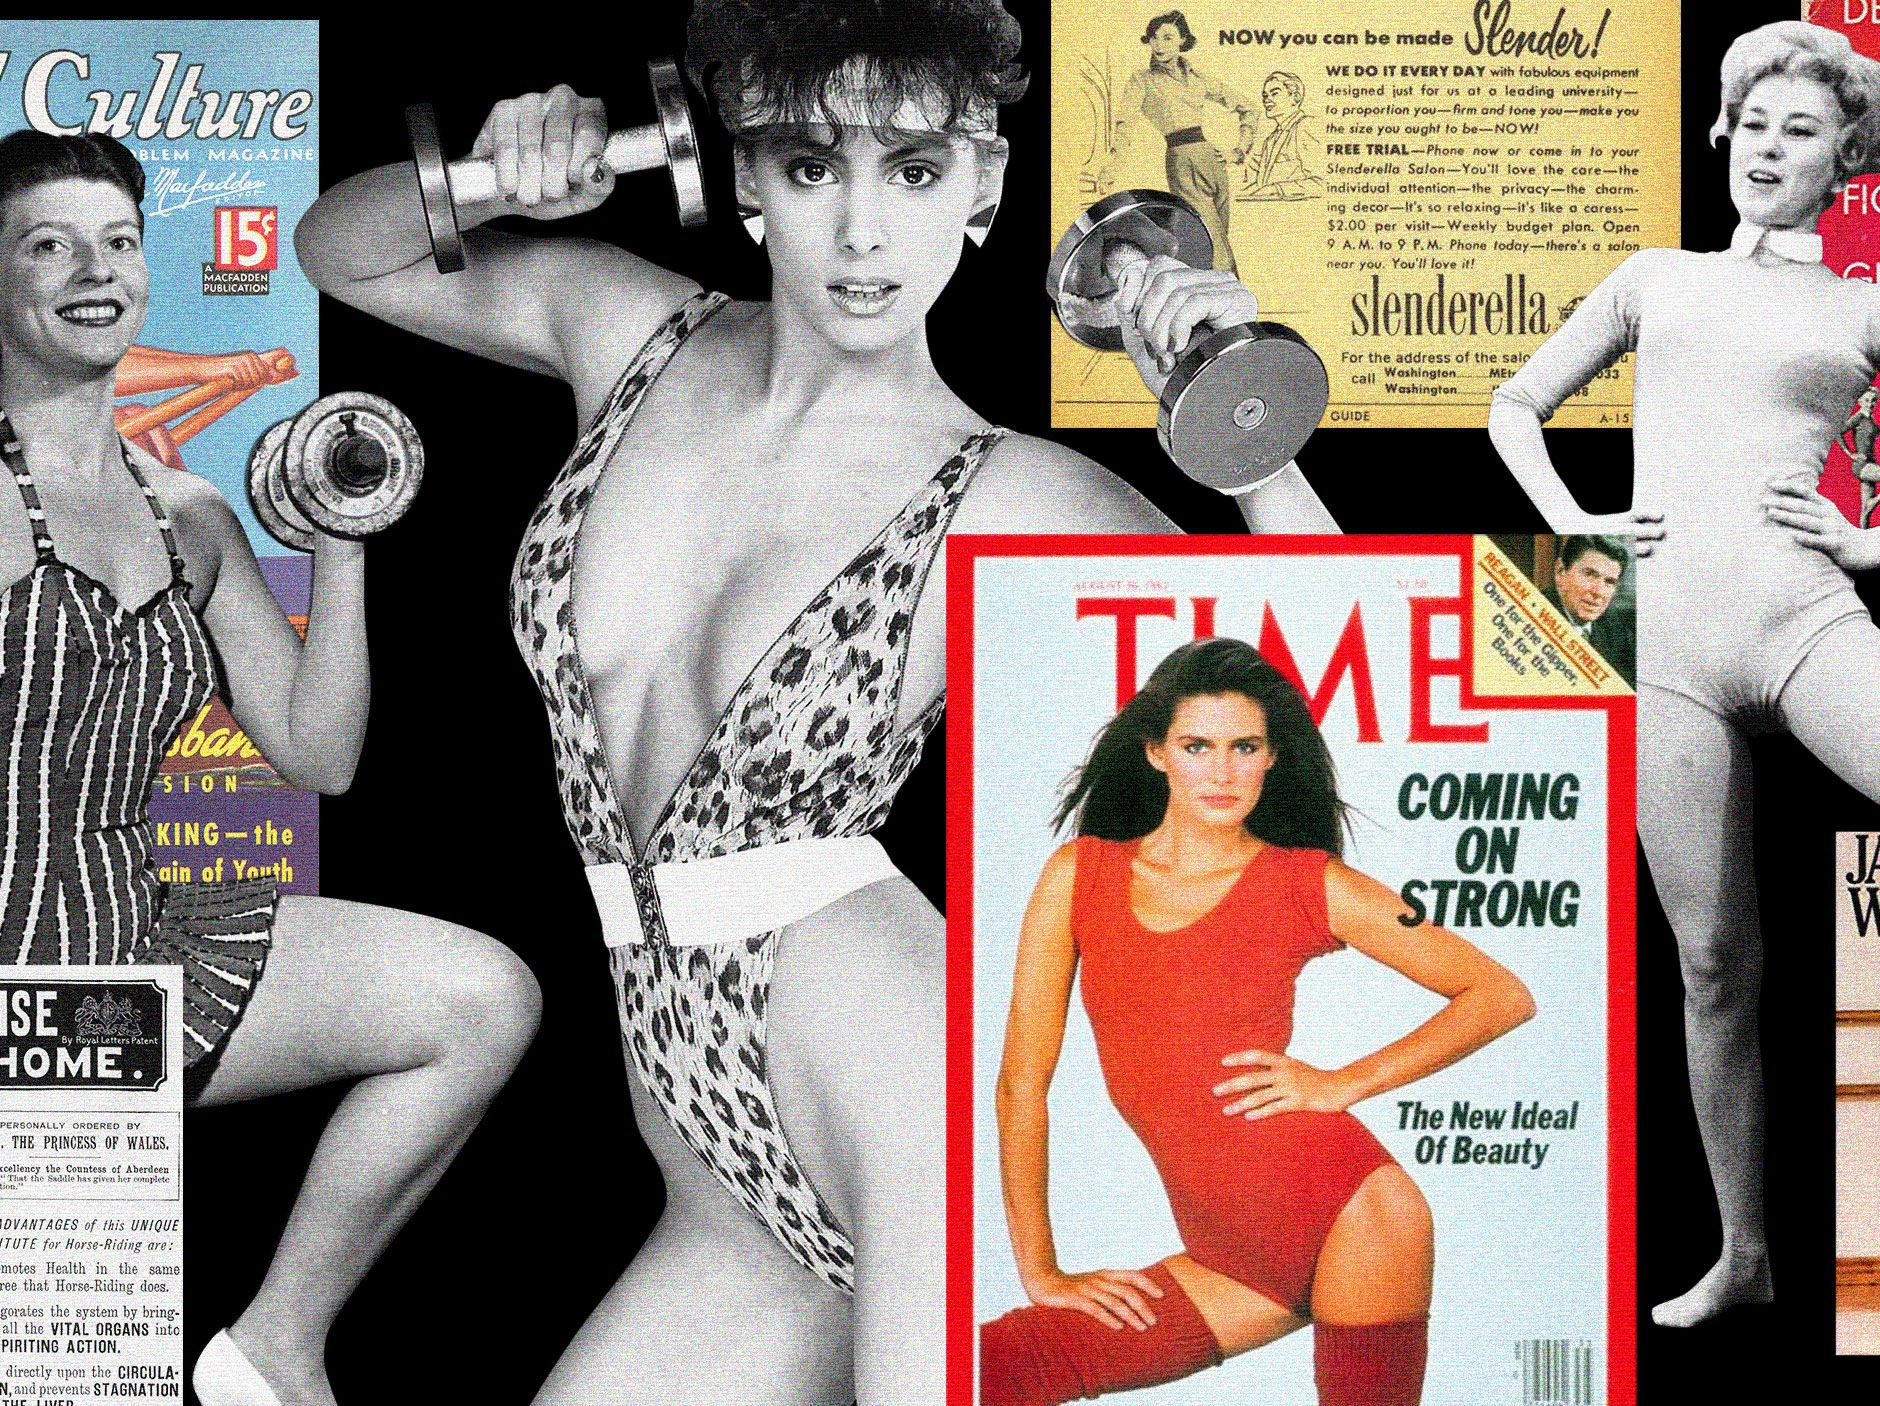 The History Behind Women's Obsession with Working Out